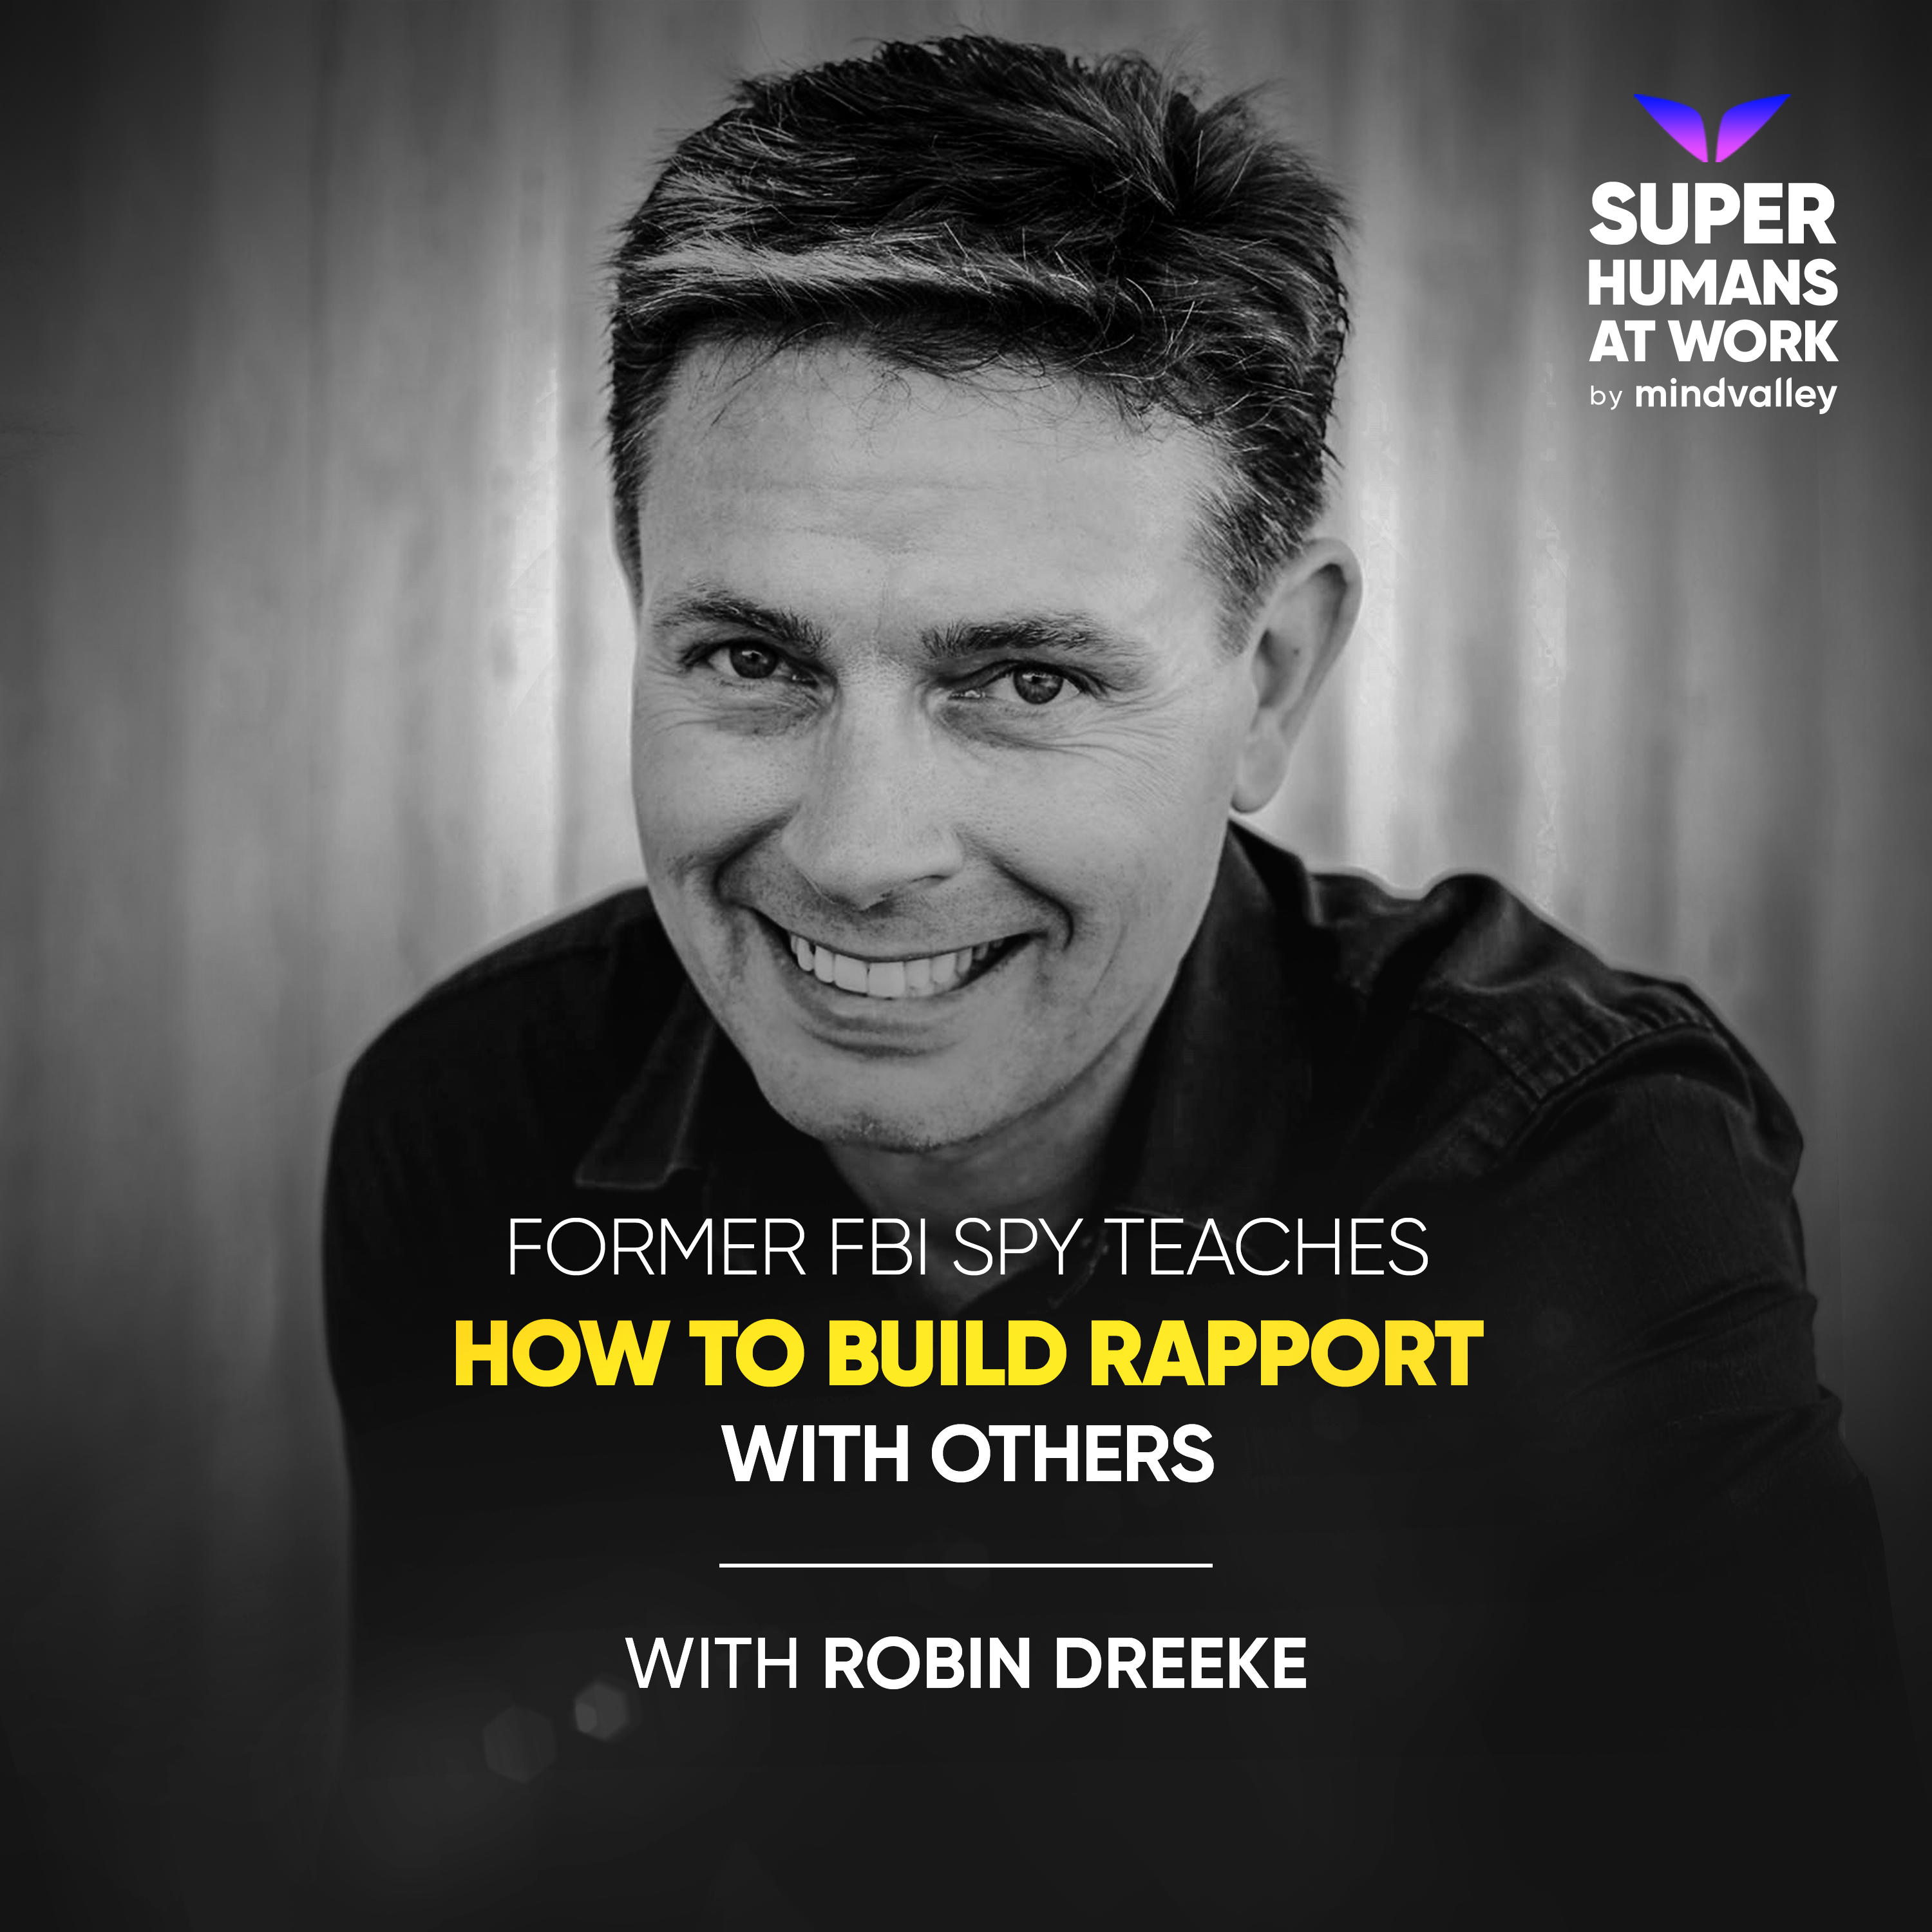 Former FBI Spy Teaches How To Build Rapport With Others - Robin Dreeke